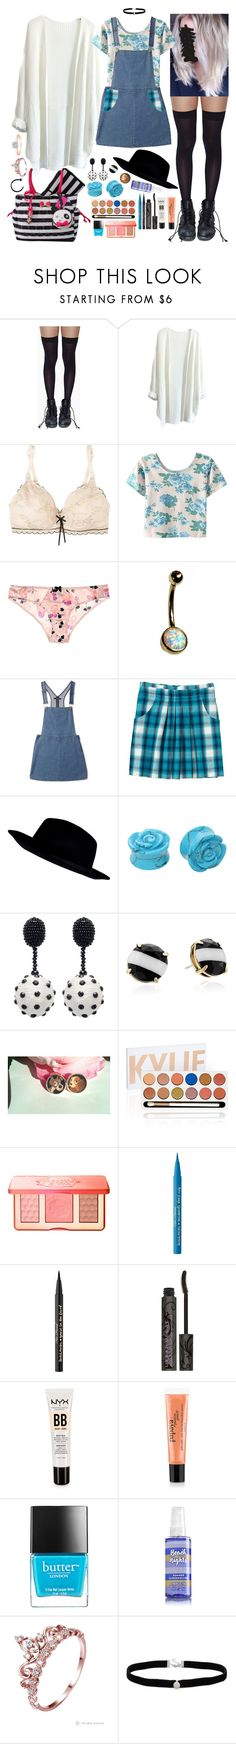 """""""24-year-old jersey"""" by kinathegreat ❤ liked on Polyvore featuring Leg Avenue, Elle Macpherson Intimates, WithChic, Myla, Forever 21, Gap, River Island, Hot Topic, Oscar de la Renta and Kate Spade"""